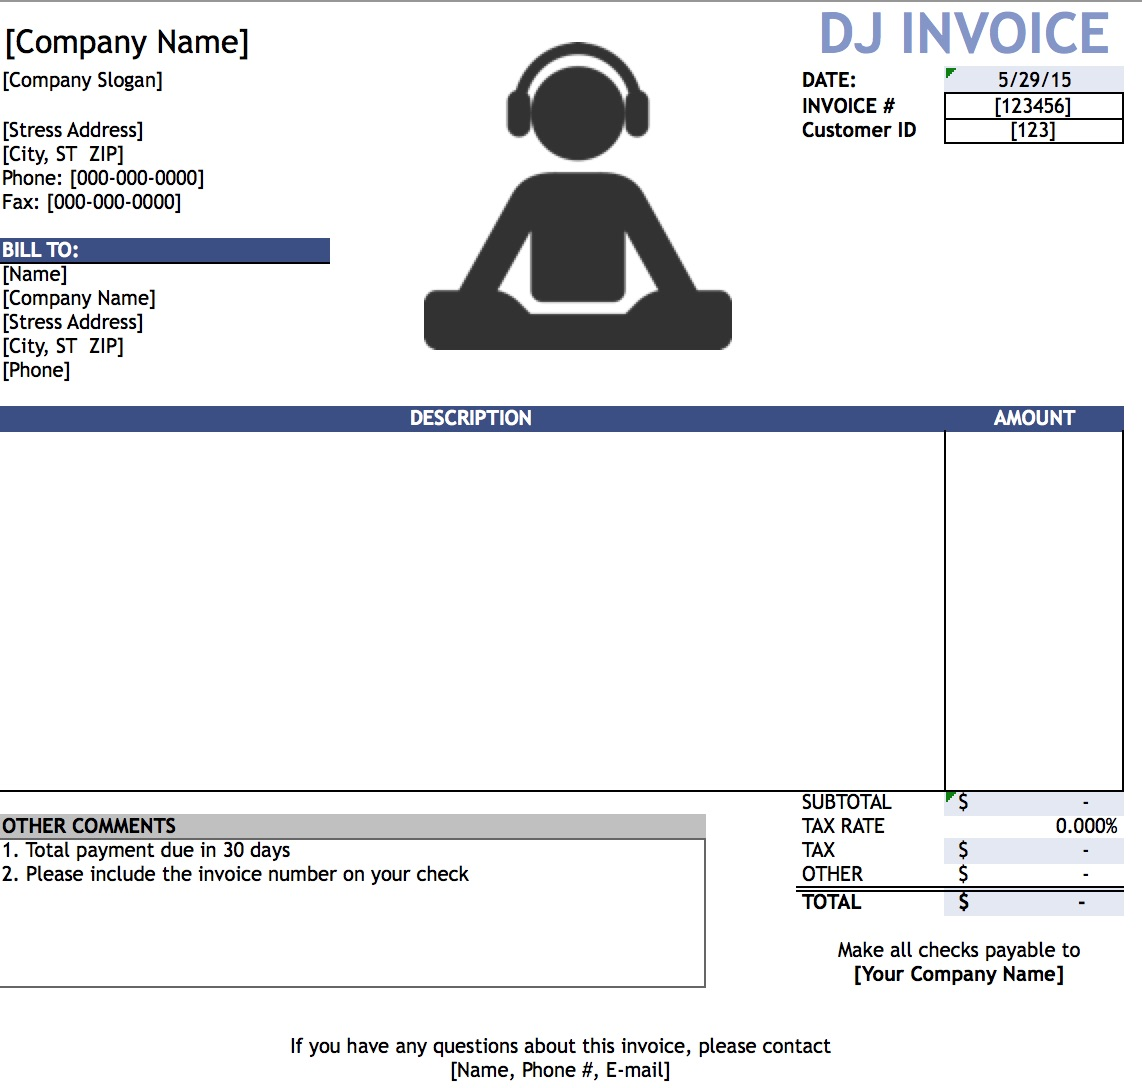 Free DJ Disc Jockey Invoice Template Excel PDF Word Doc - Ms word custom invoice template for service business